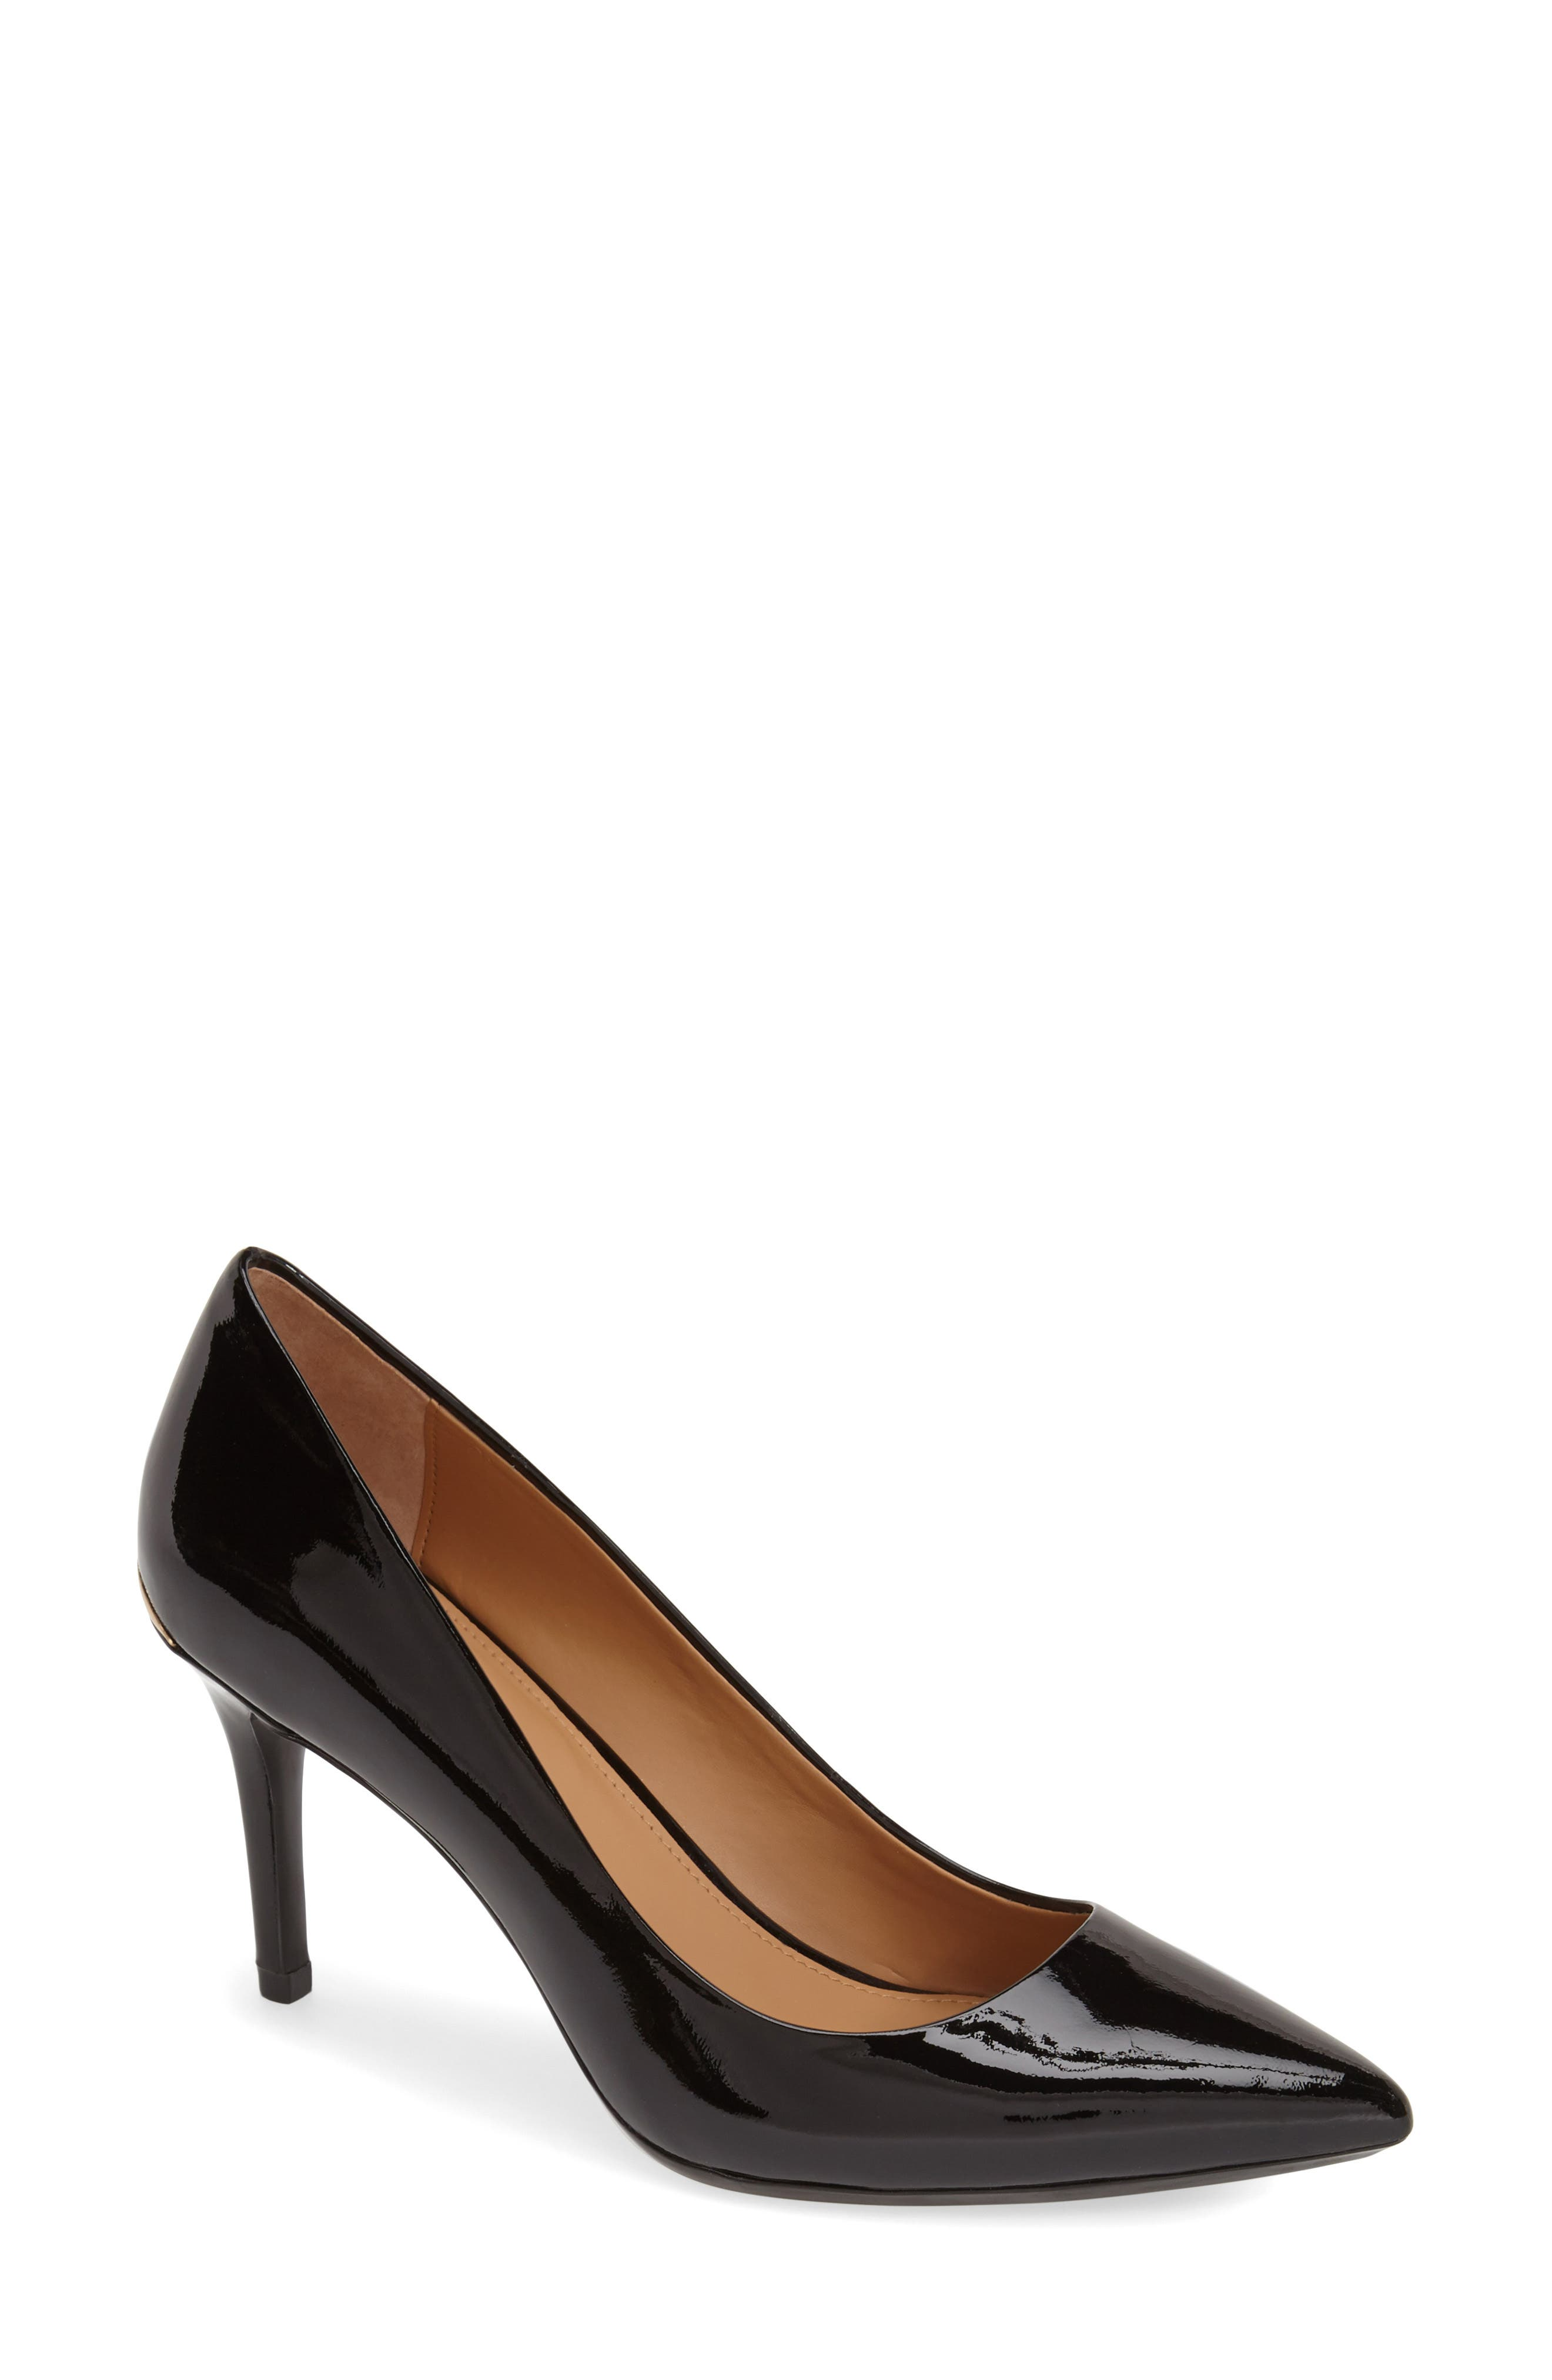 CALVIN KLEIN, 'Gayle' Pointy Toe Pump, Alternate thumbnail 5, color, BLACK PATENT